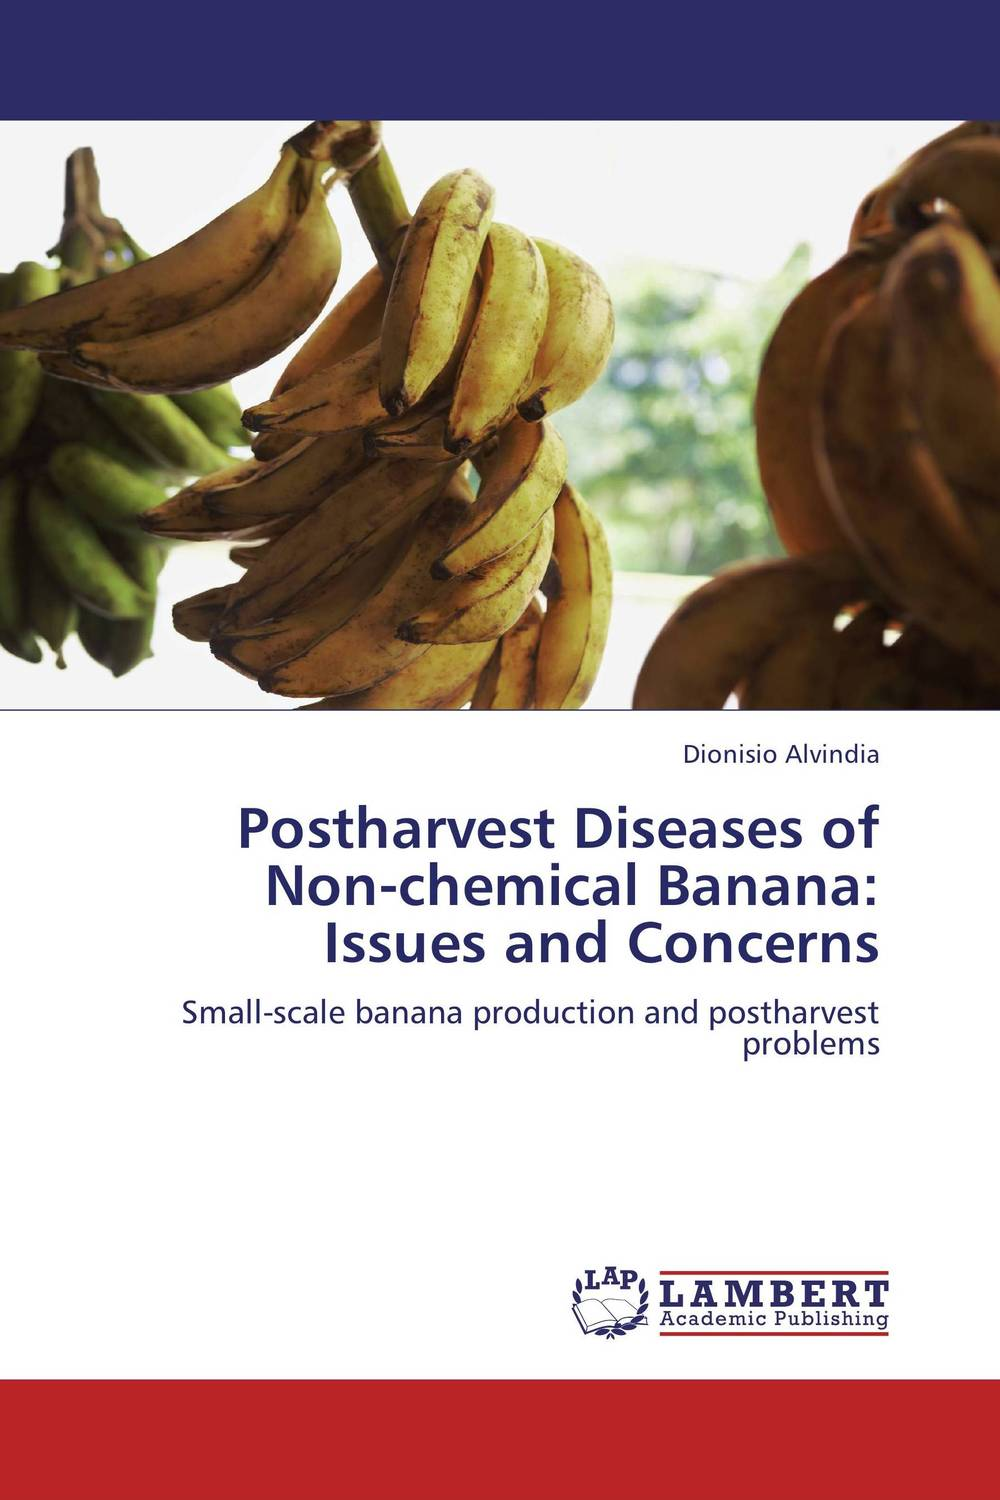 Postharvest Diseases of Non-chemical Banana: Issues and Concerns auguste reymond часы auguste reymond ar418030b 56 коллекция cleo